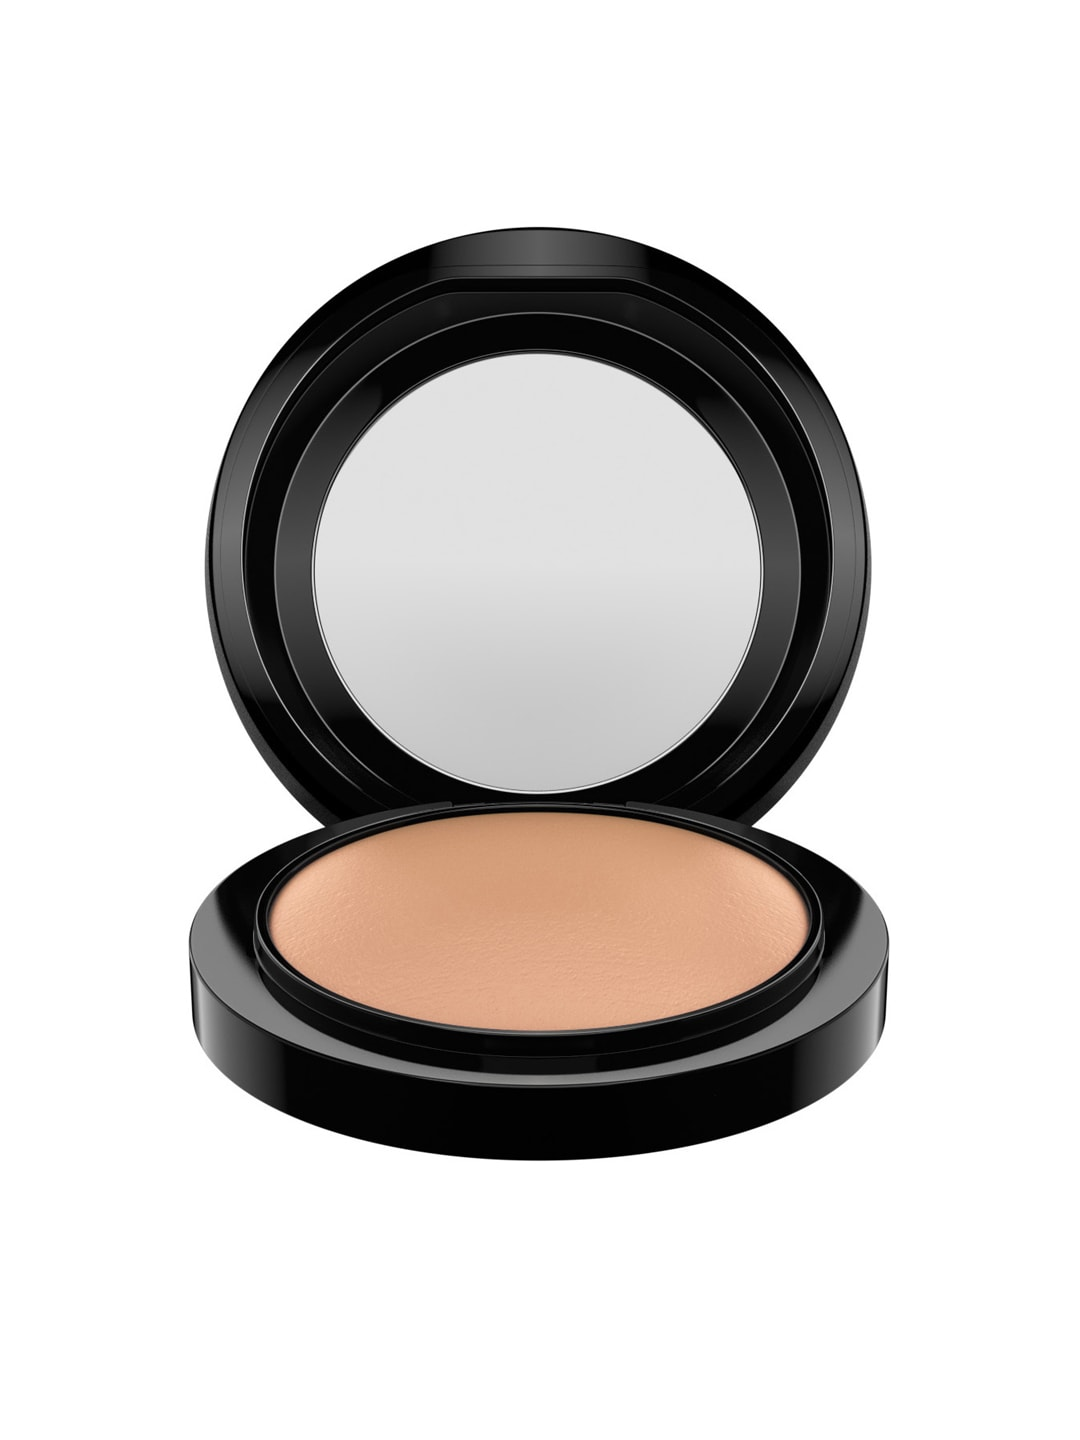 M.A.C Medium Deep Mineralize Skinfinish Natural Face Powder image